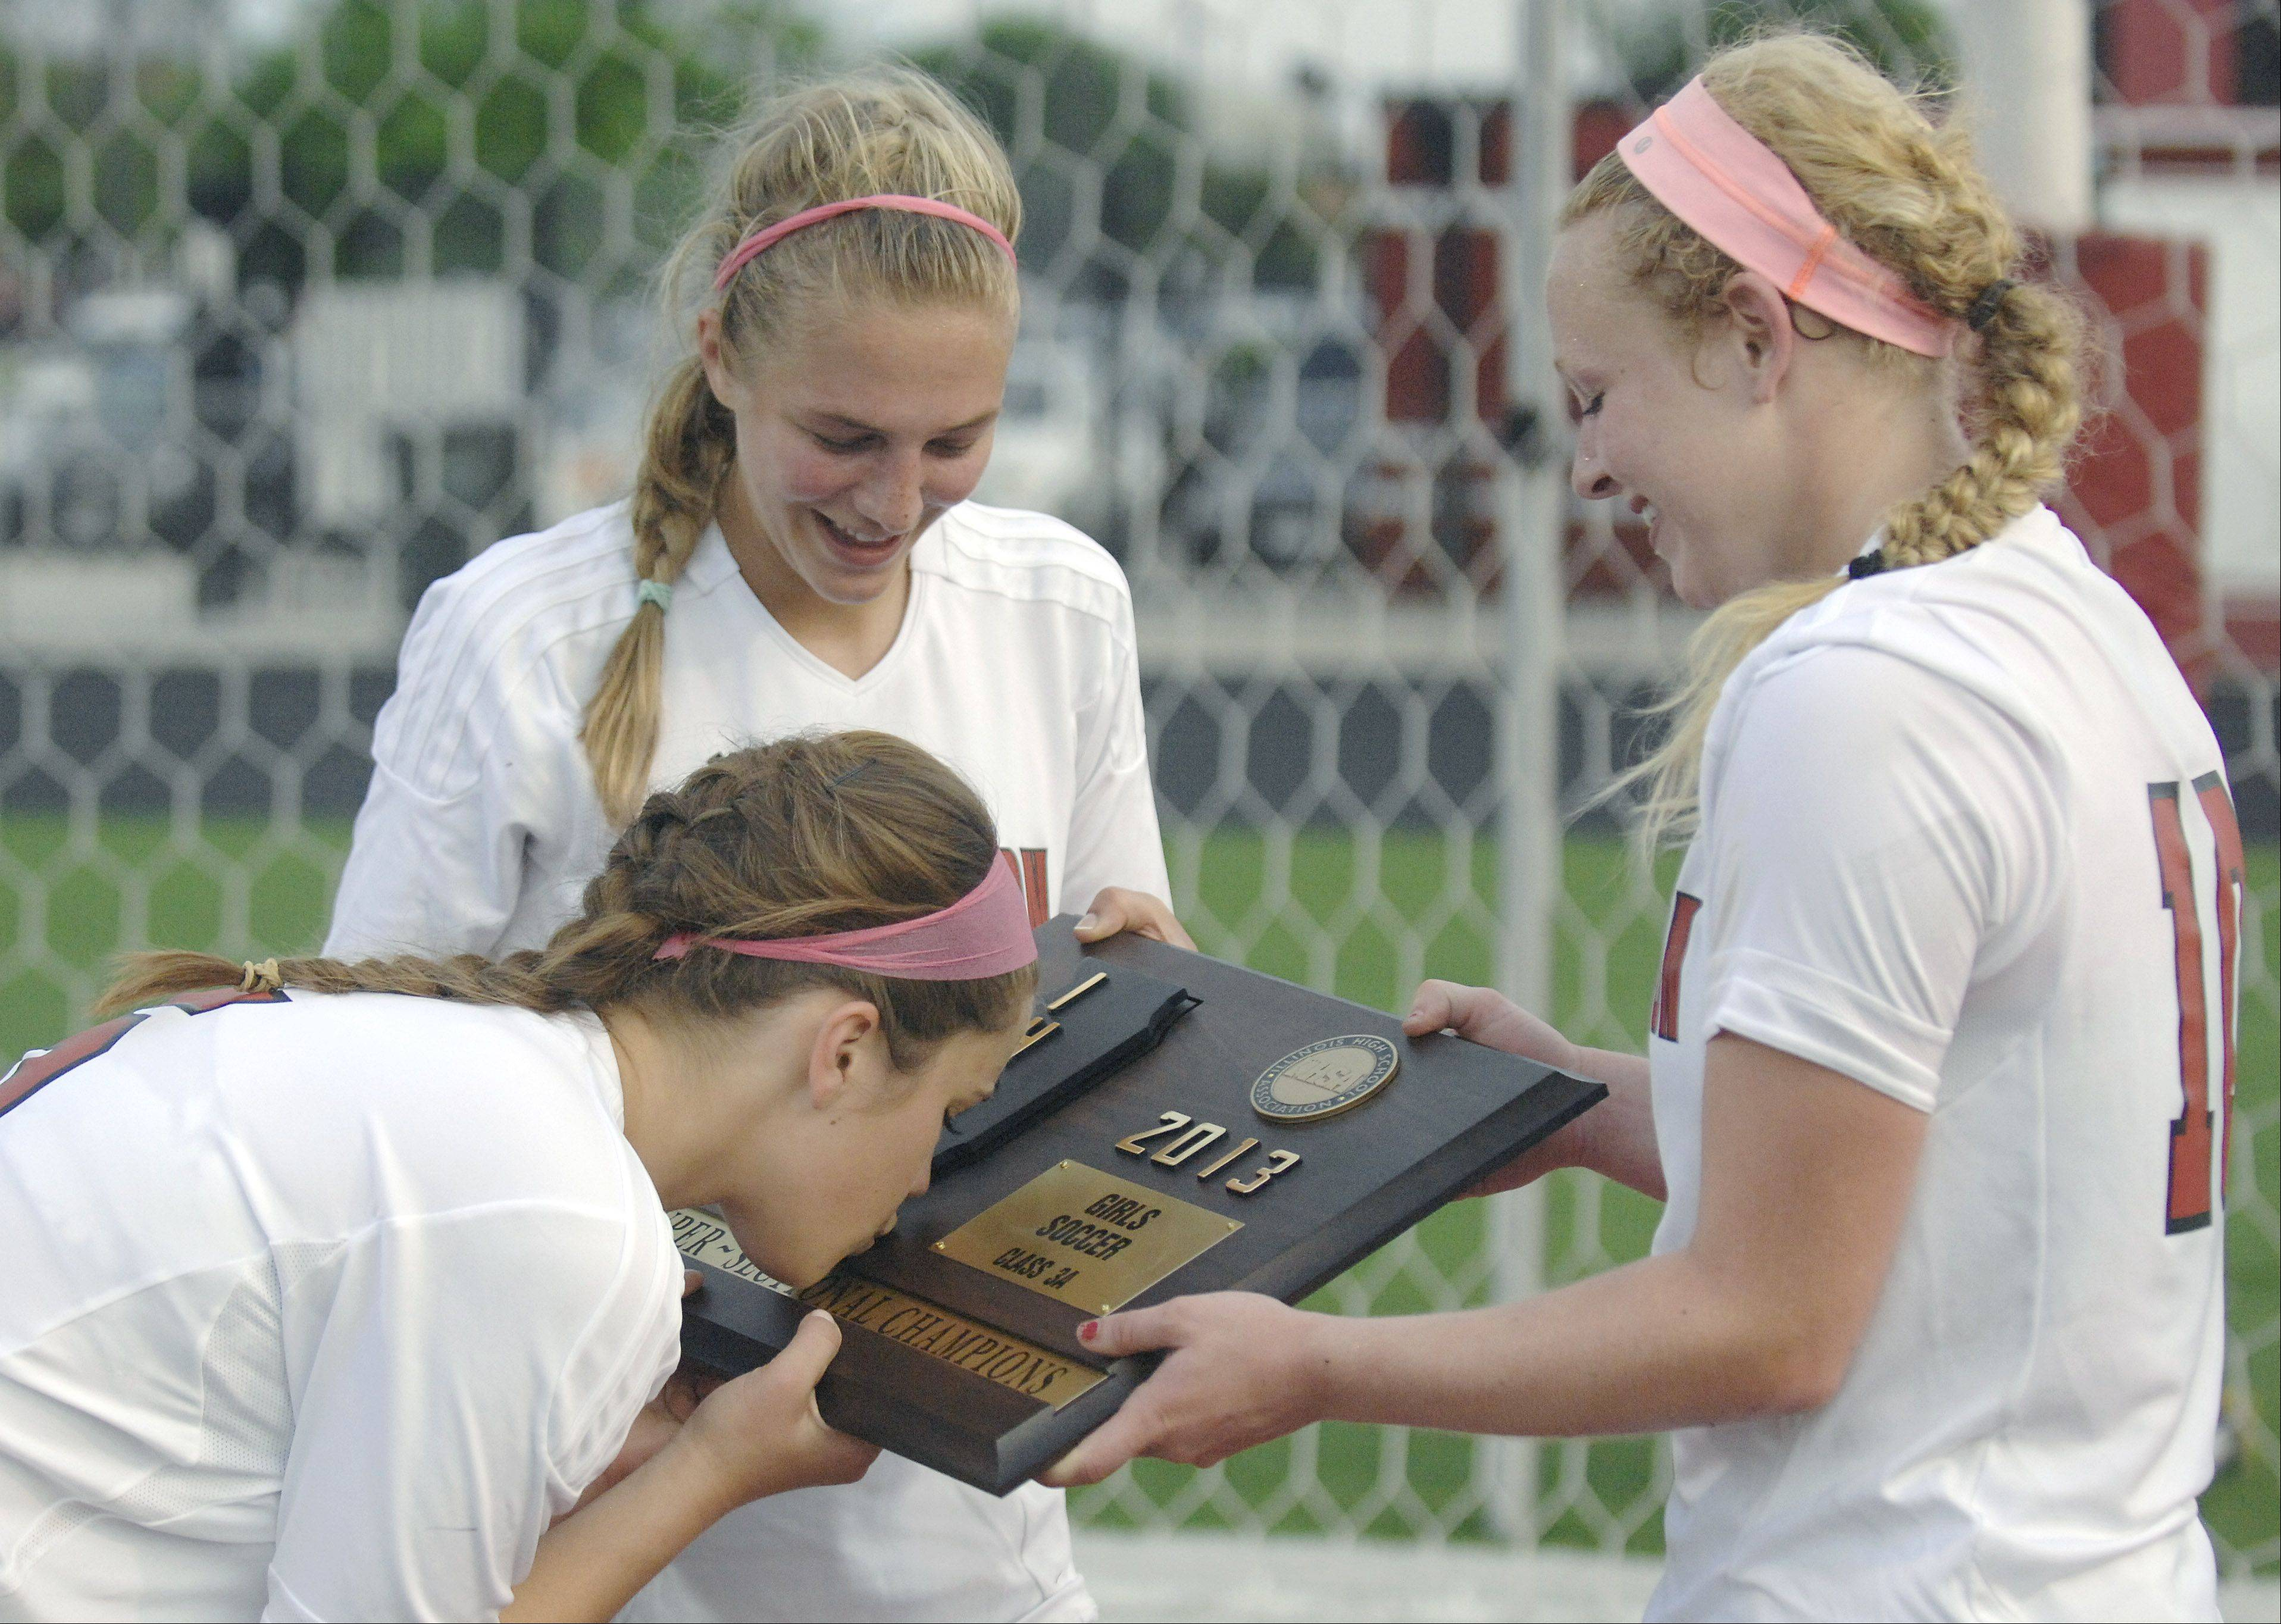 Barrington's Jennifer Flannery kisses the trophy plaque while teammates Emily Morin, center, and Molly Pfeiffer, all seniors, giggle after their Class 3A supersectional win over St. Charles North in Barrington on Wednesday.